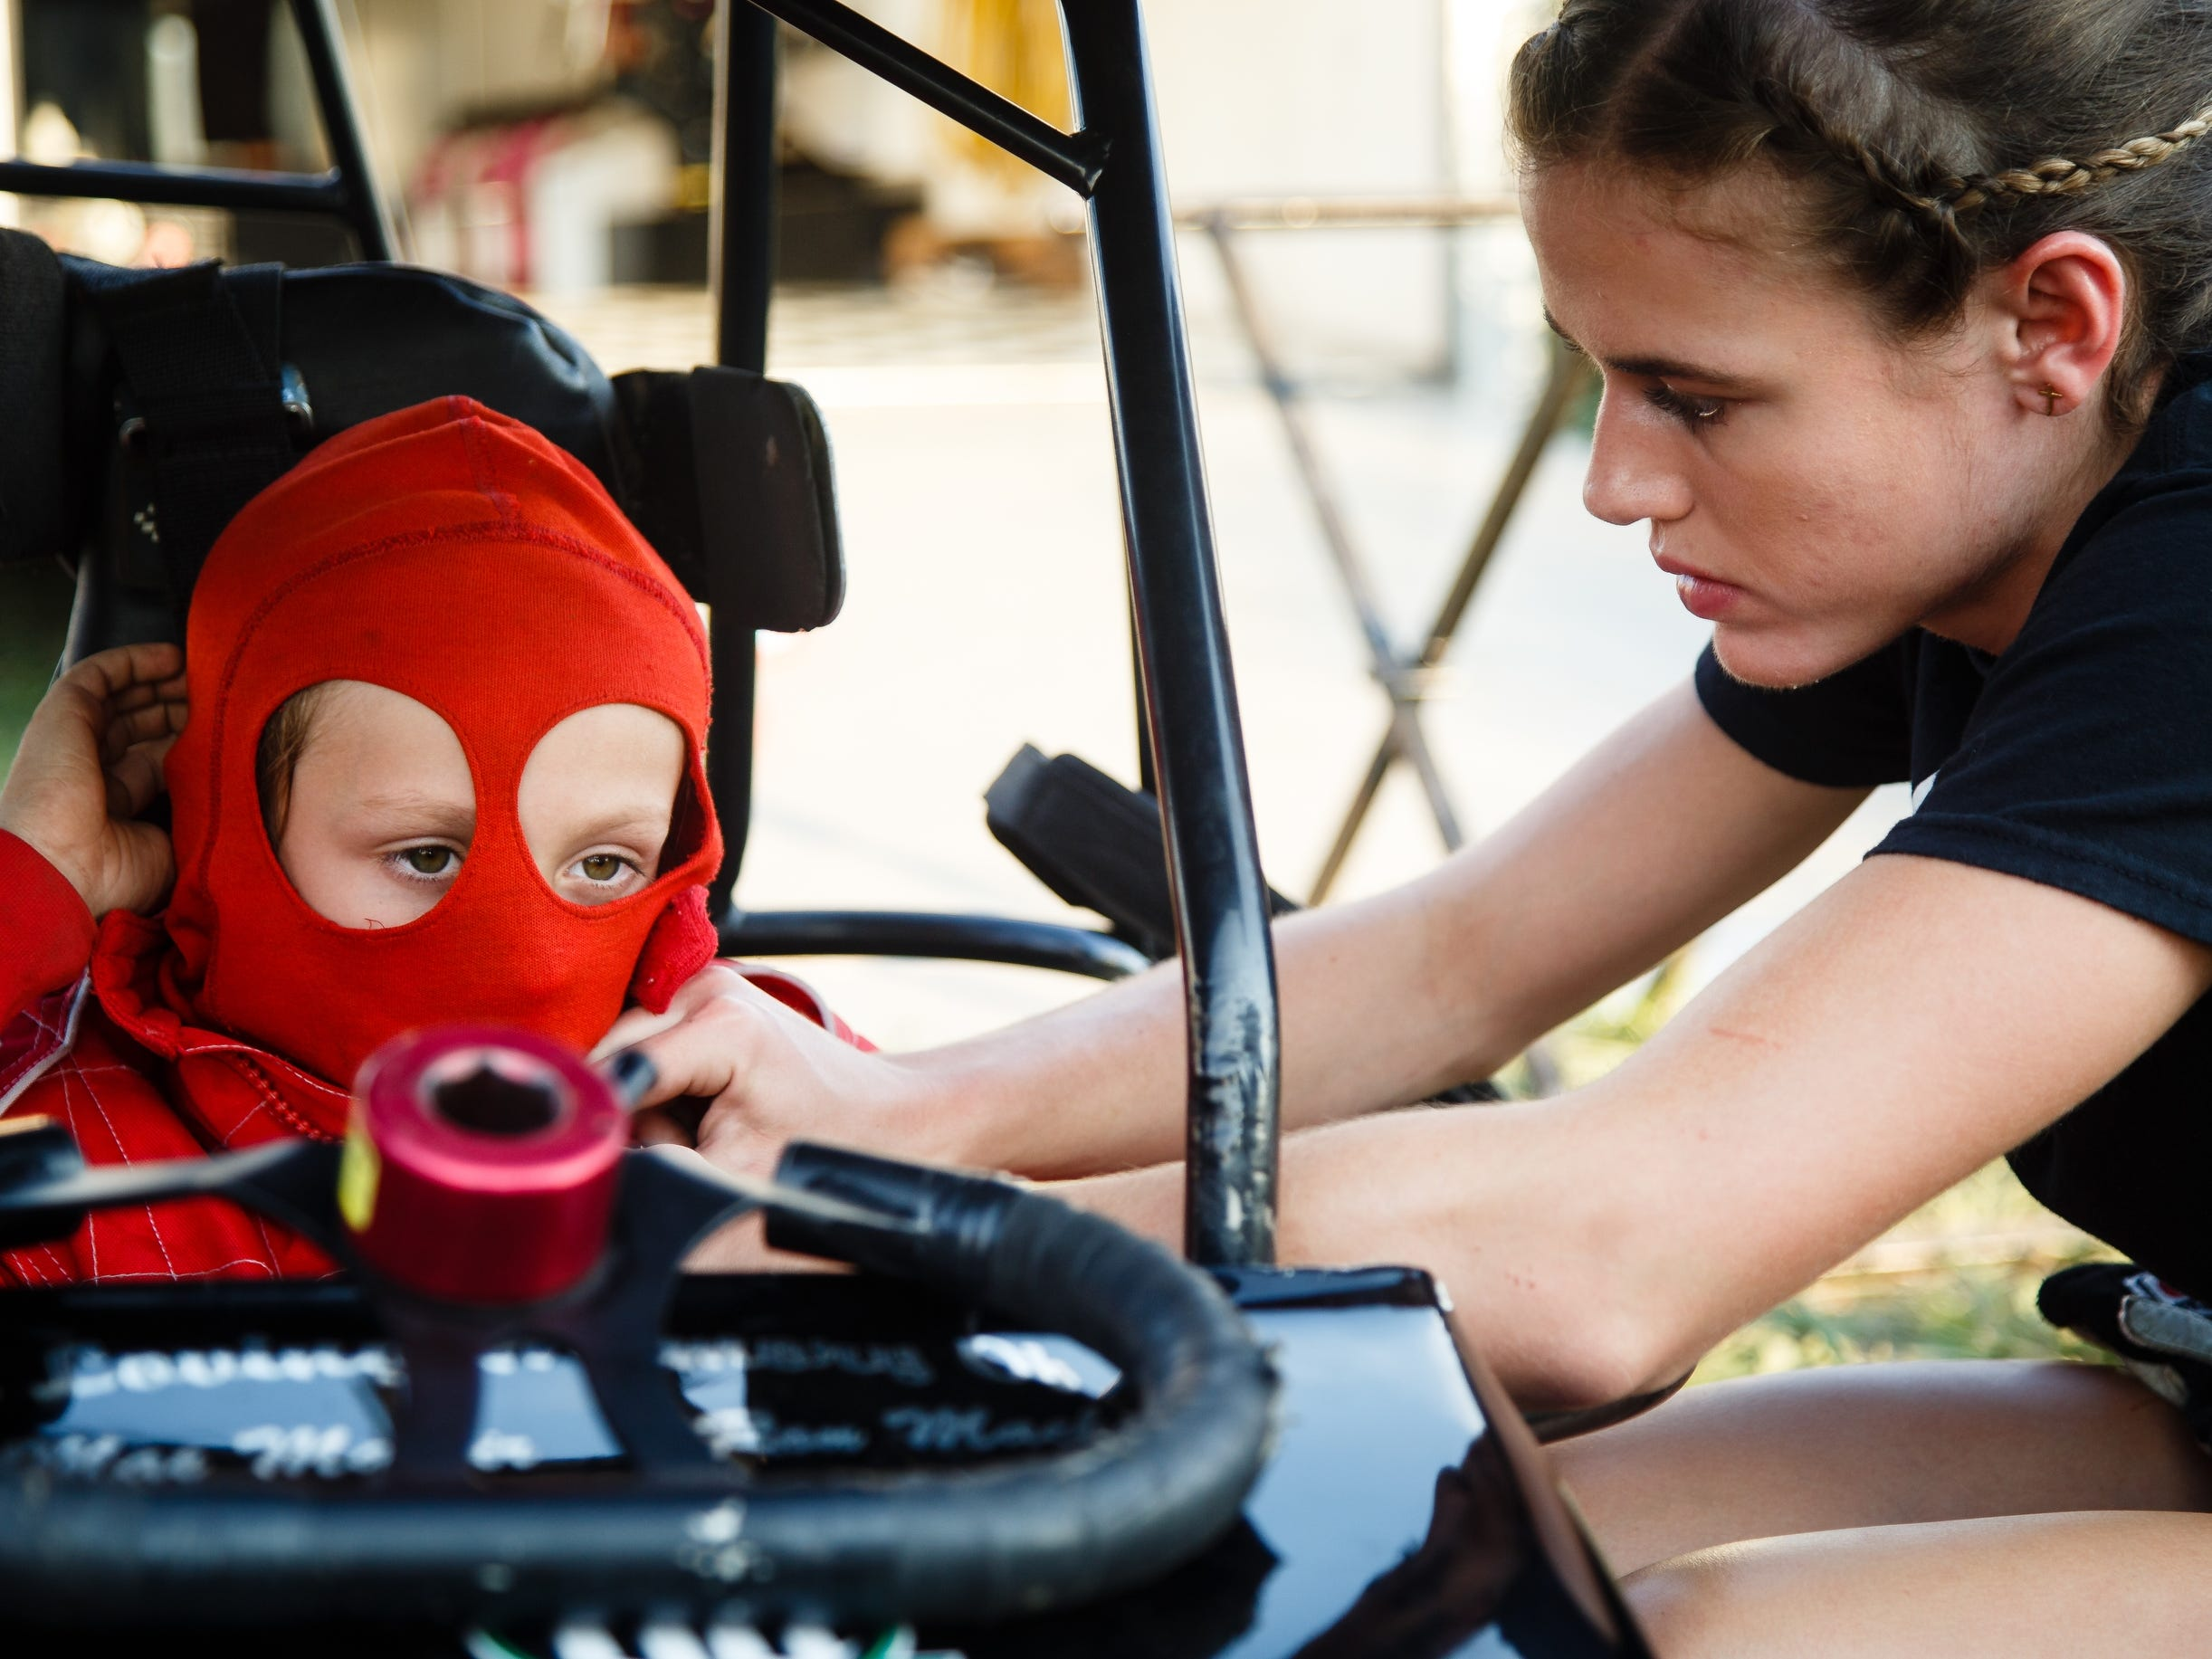 McKenna Haase helps Garrett Tatnell, 7 of Minneapolis, put on his racing gear during Nationals at the English Creek Speedway on Tuesday, Aug. 7, 2018 in Knoxville. Tatnell races with Haase's development team, Compass Racing, that she started when she was 17.